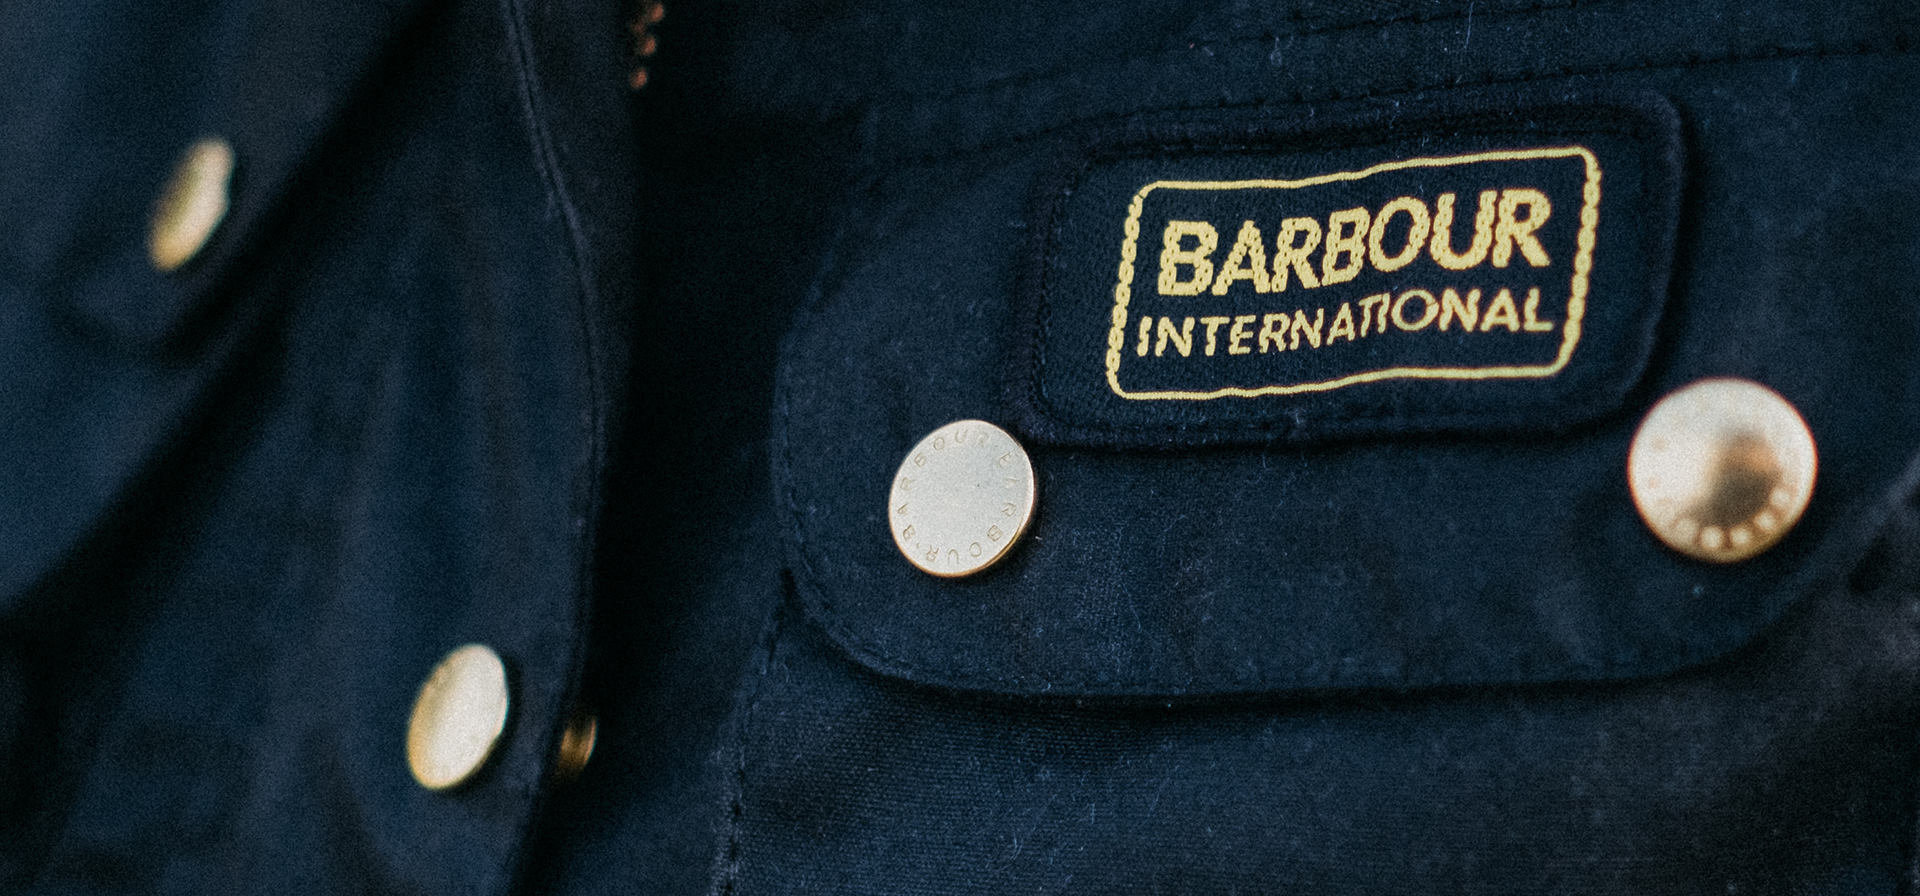 (Barbour) Barbour International Logo lozenge on a waxed jacket